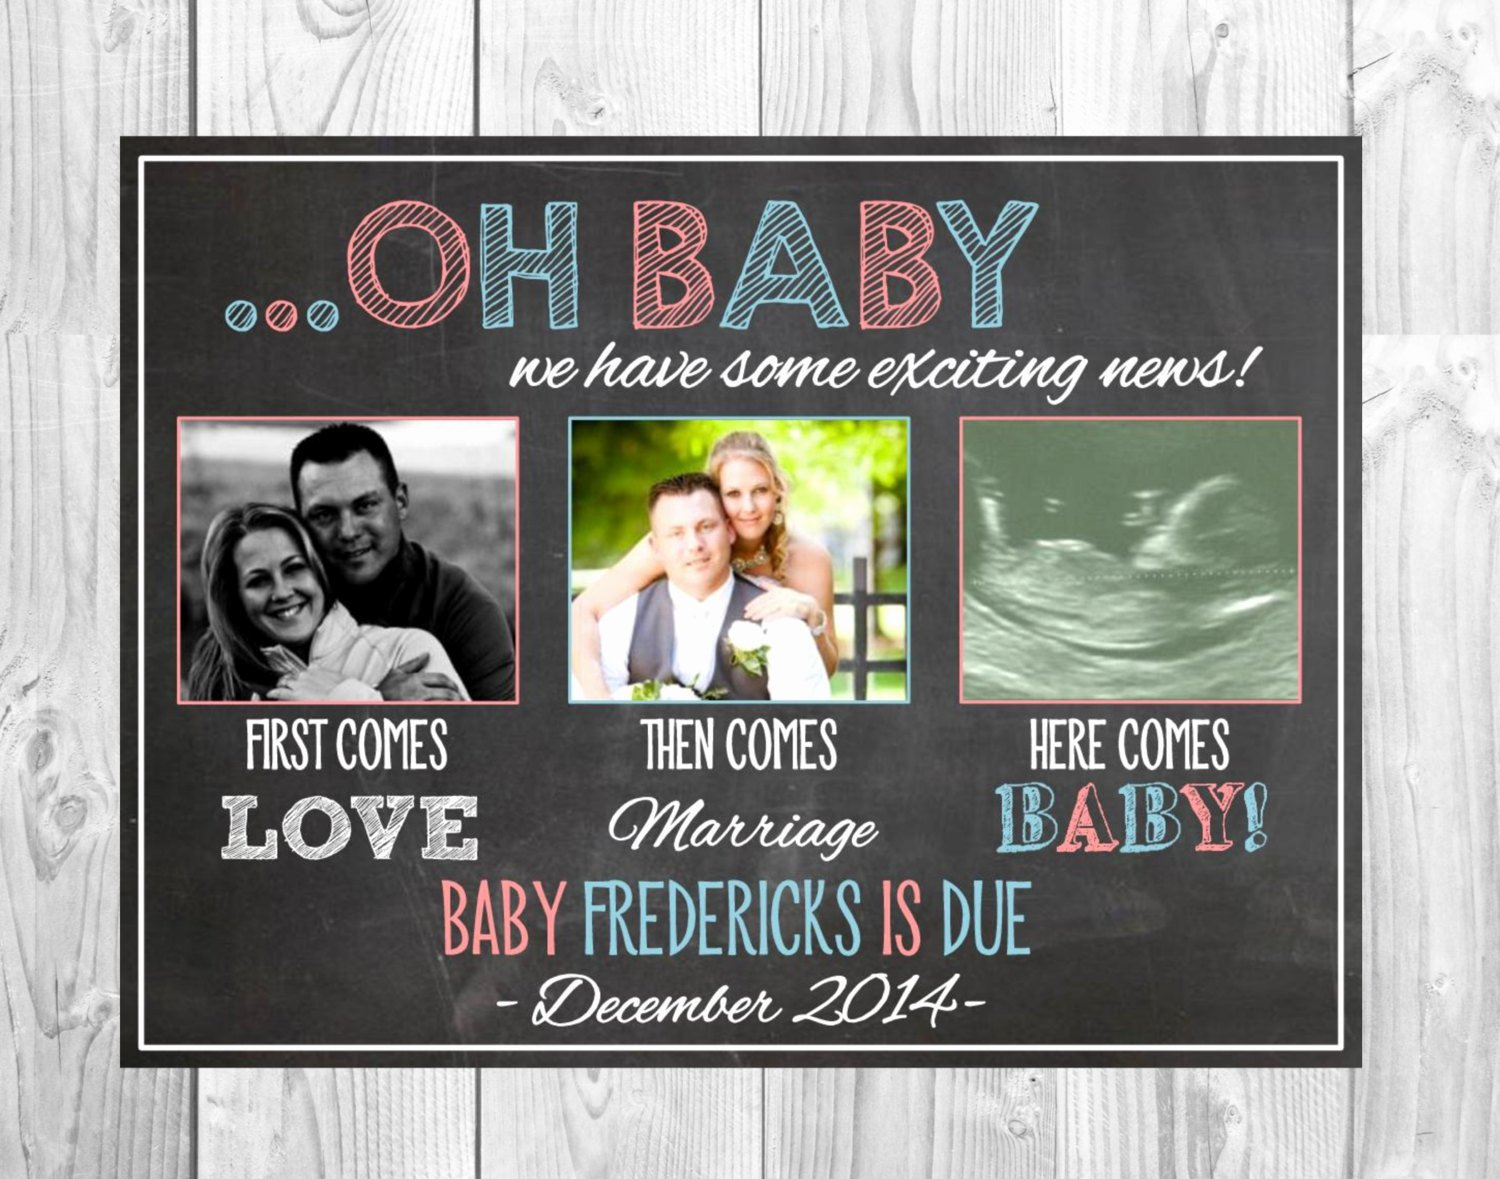 Media Announcement Template Fresh social Media Pregnancy Announcement First Es Love then